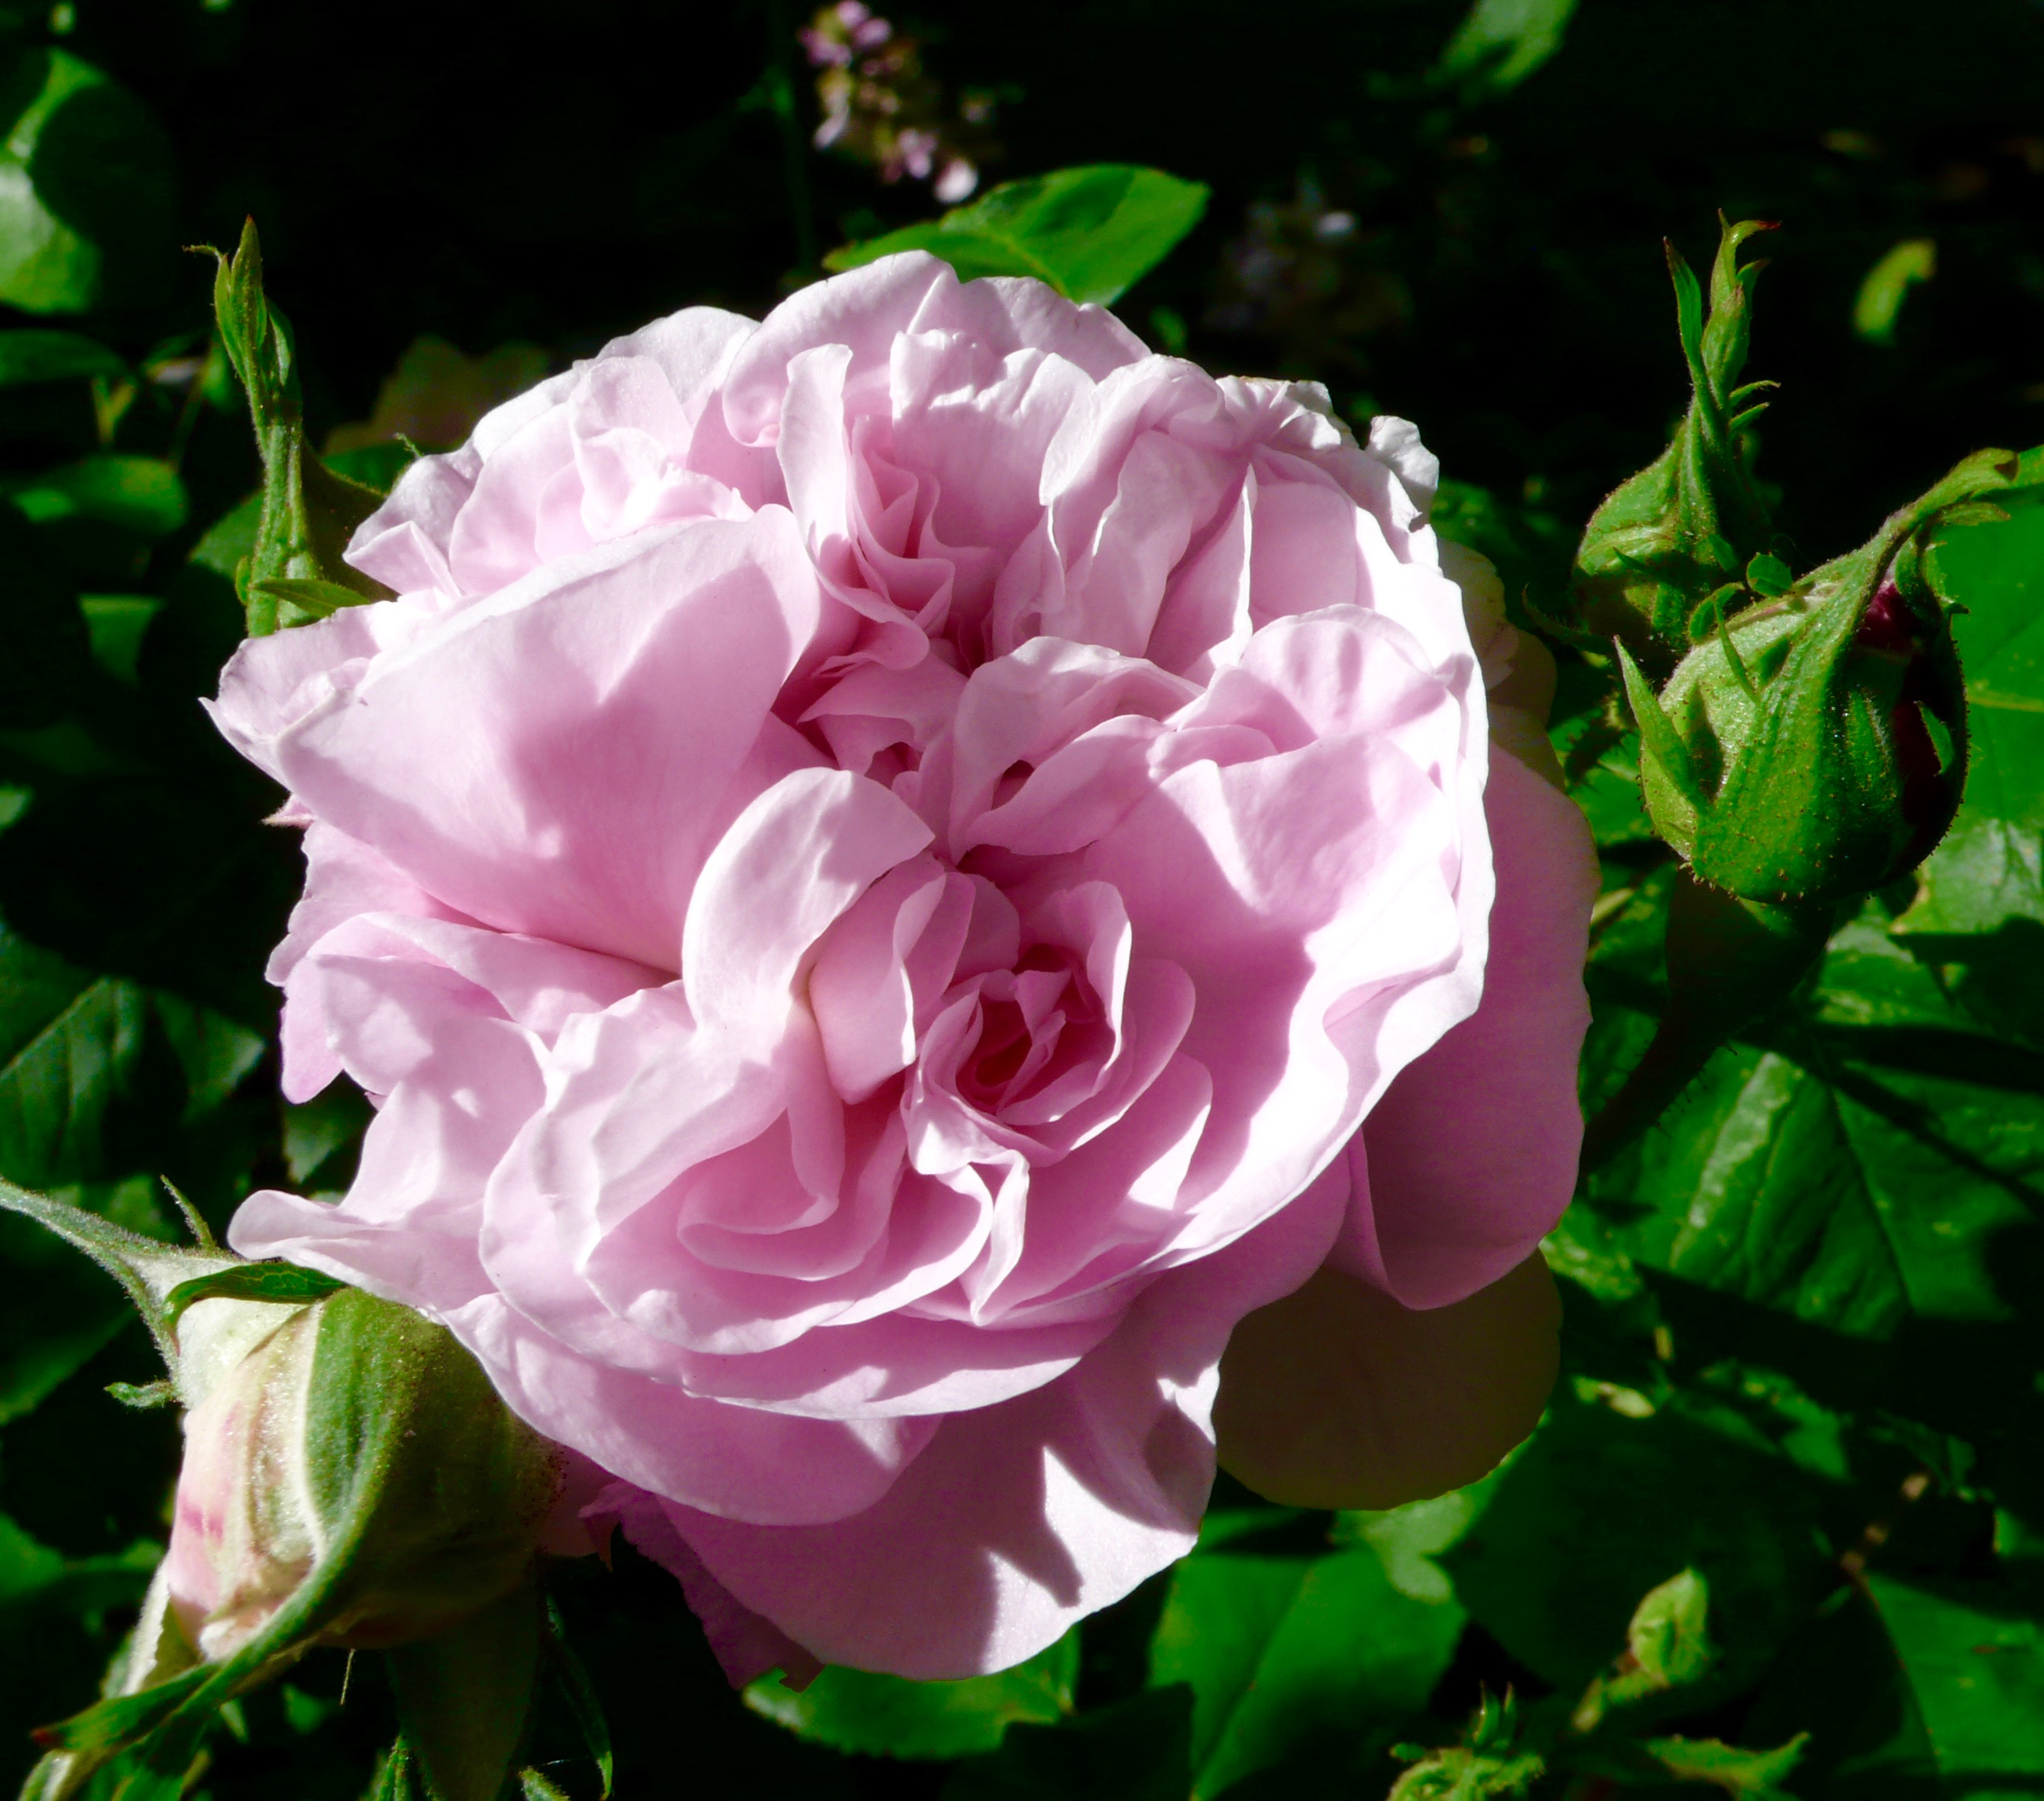 Fragrant late spring rose